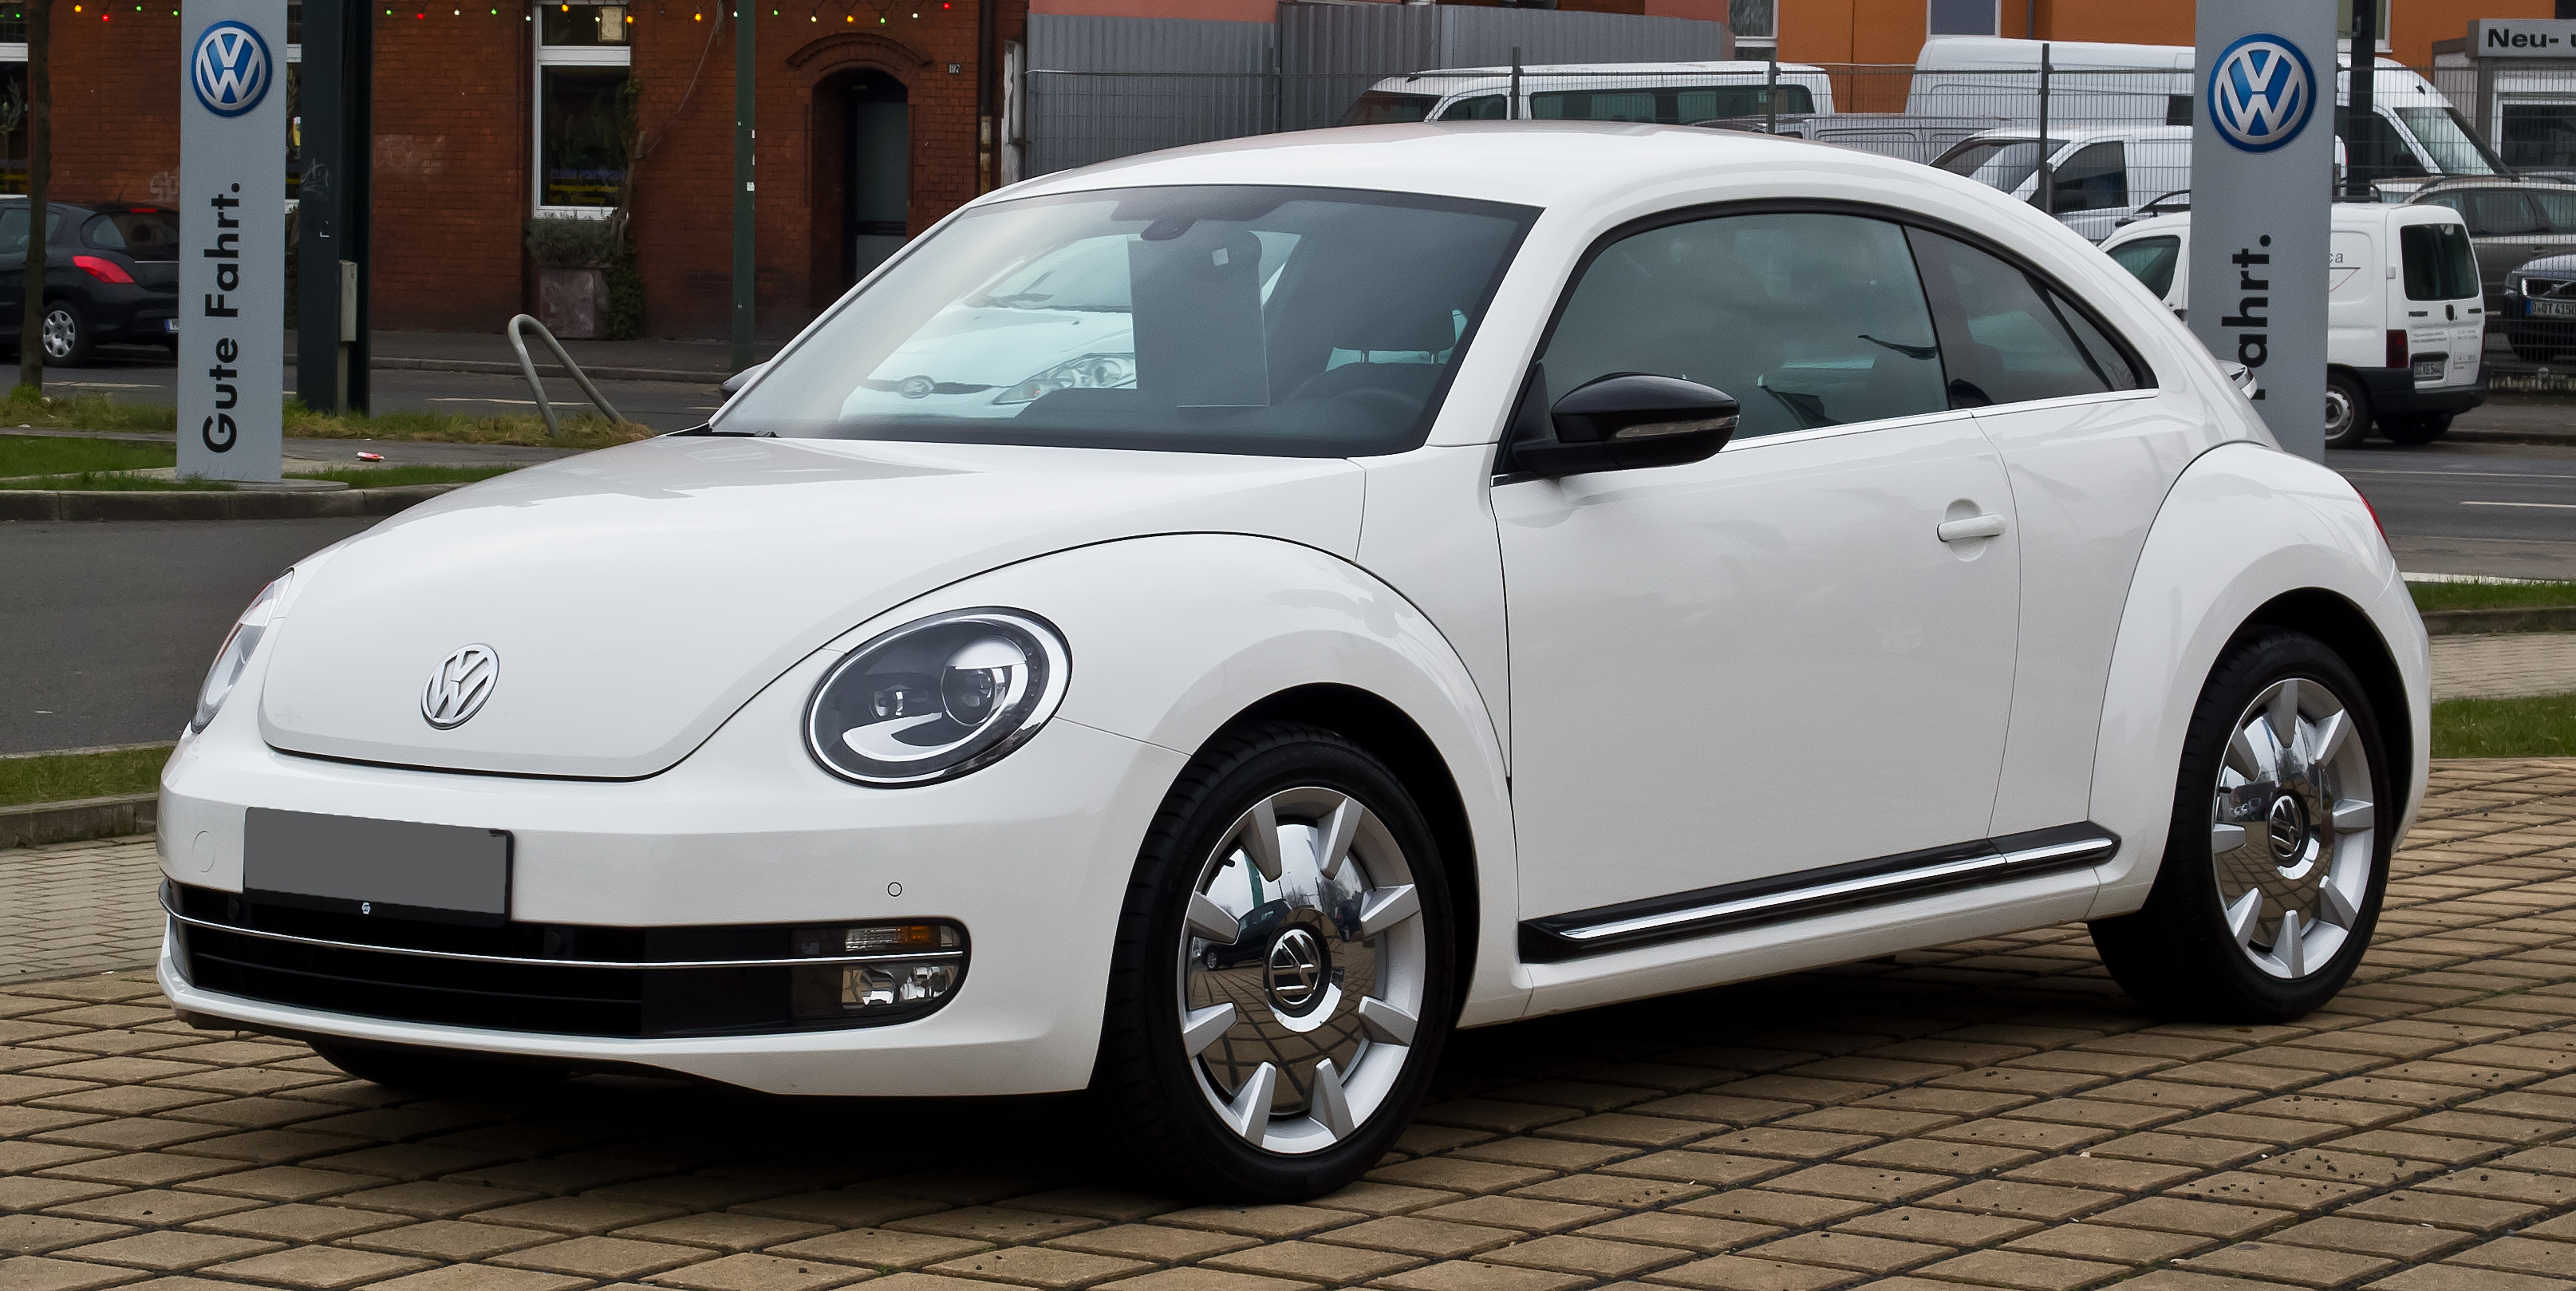 min volkswagen edition beetle dsc driver cheap s review front index